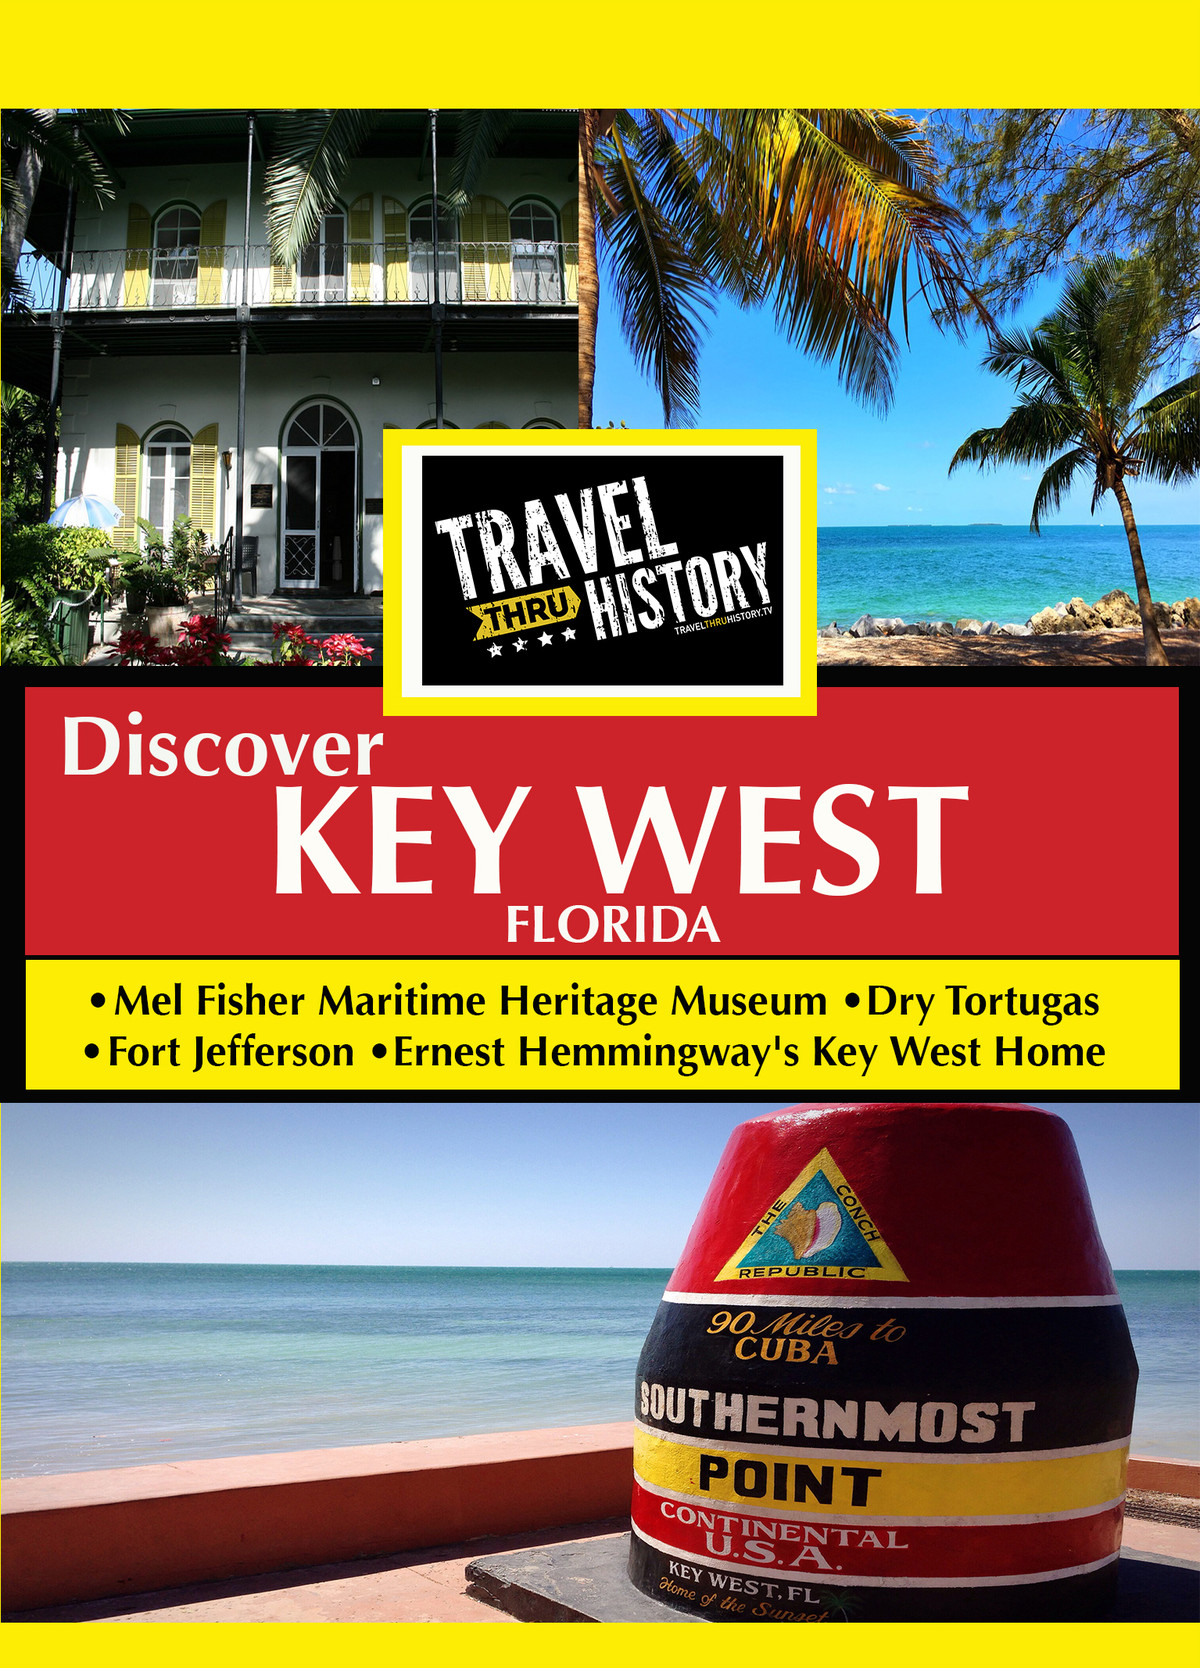 T8952 - Discover Key West Florida